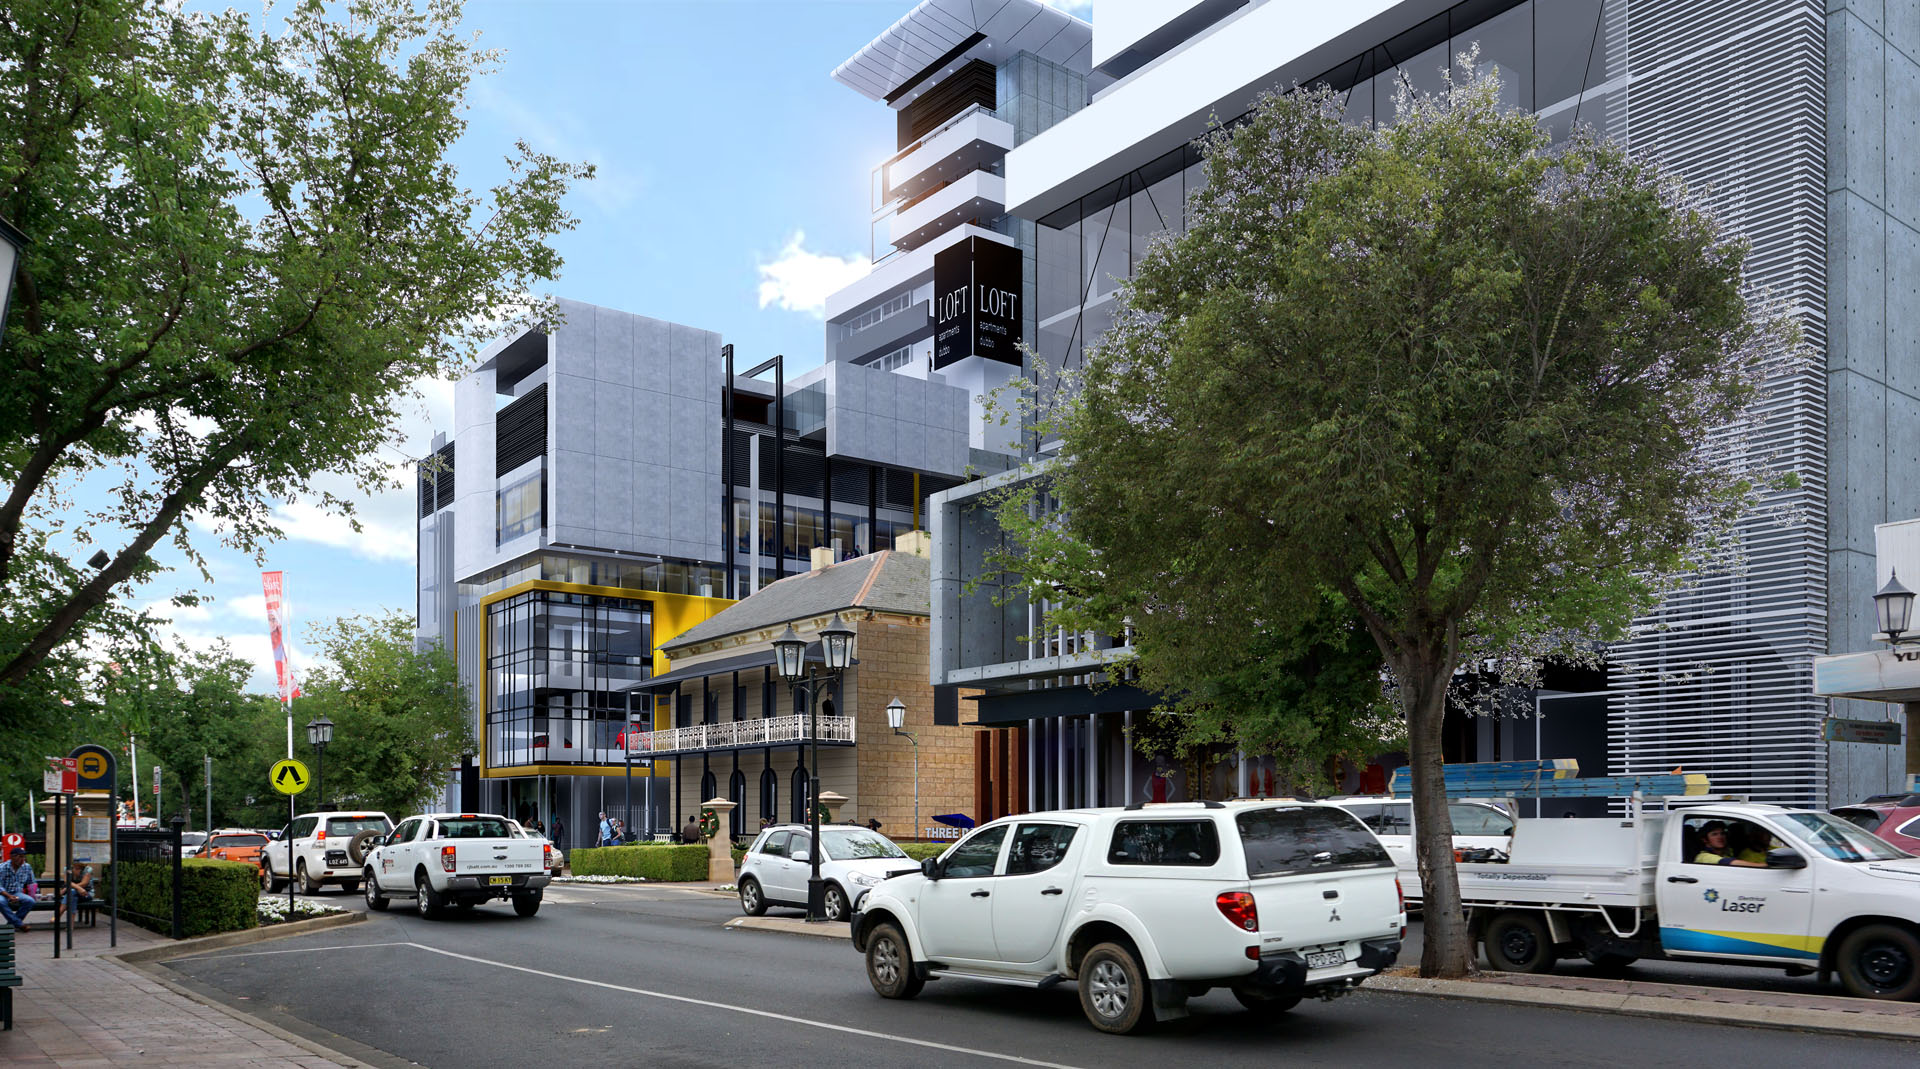 Maas Group Family Properties submit DA for major mixed-use development in the main street of Dubbo.